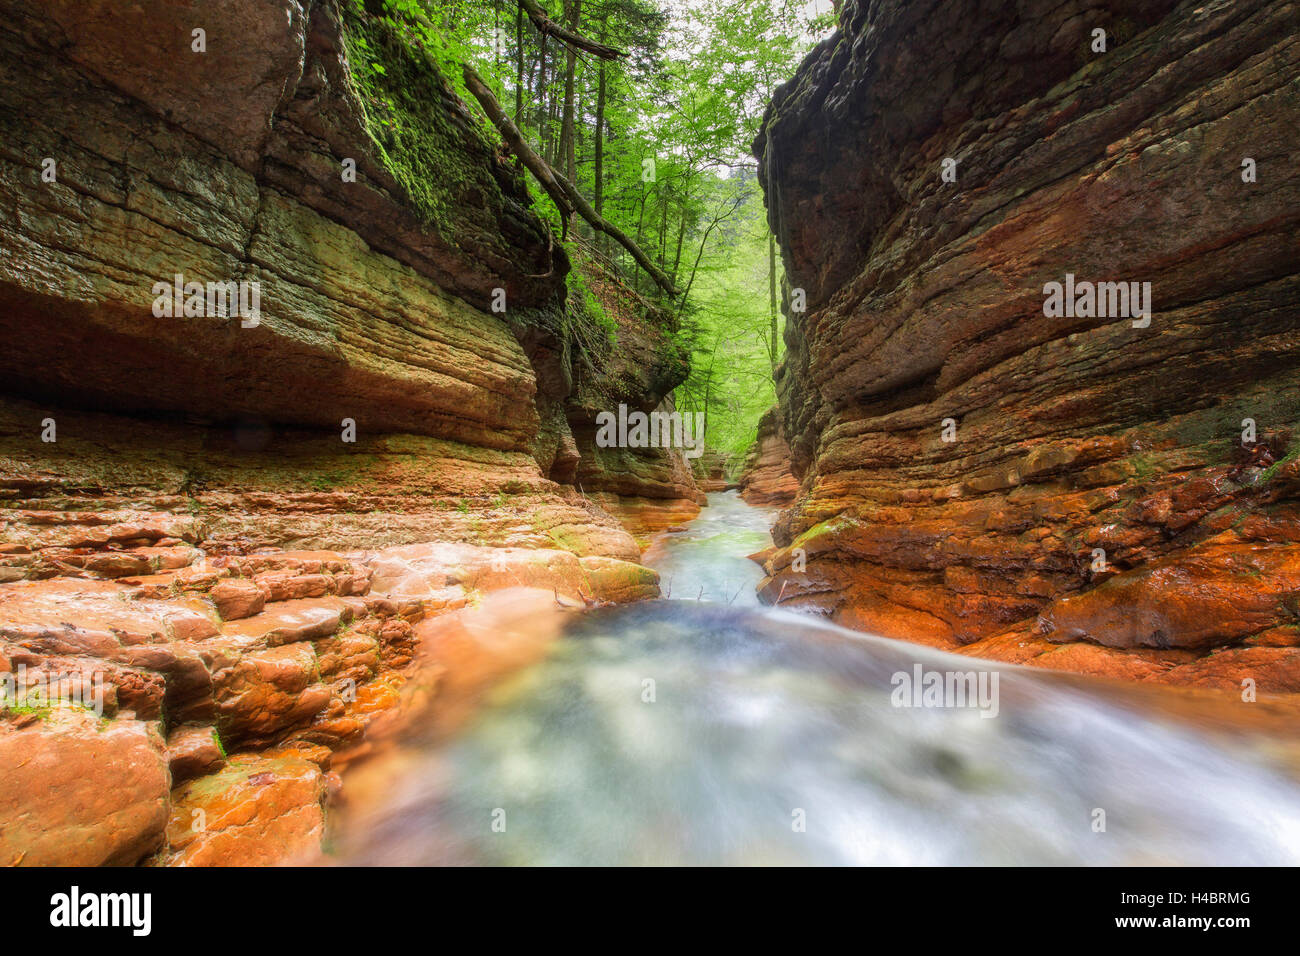 Rock formation at the Taugl, waterfall, Salzburg, Austria Stock Photo